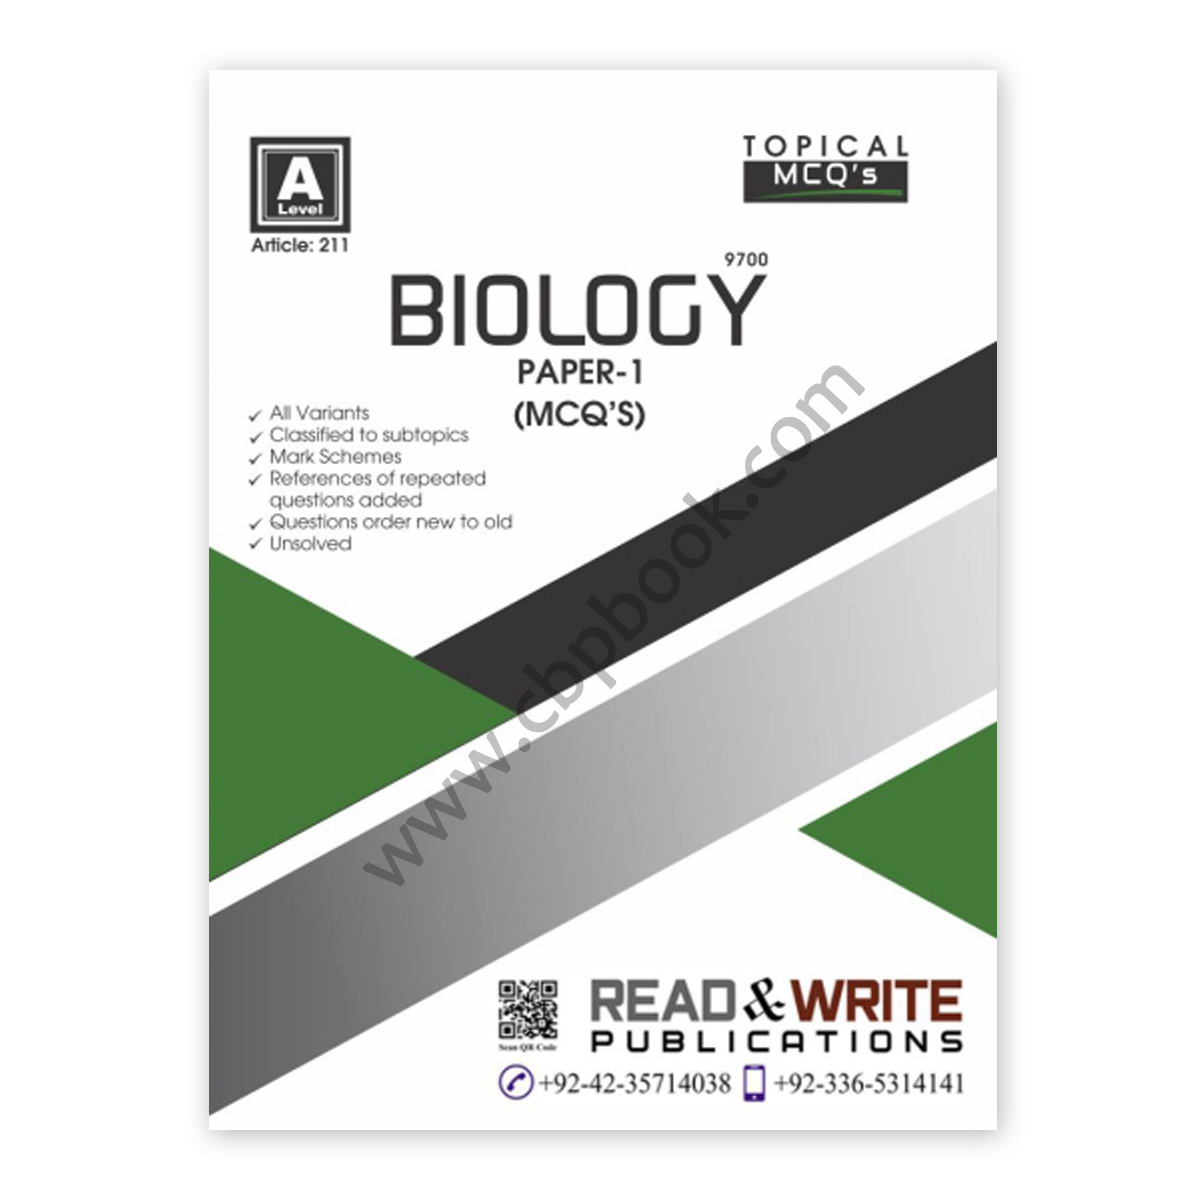 a level biology paper 1 topical mcqs (art#211) - read & write